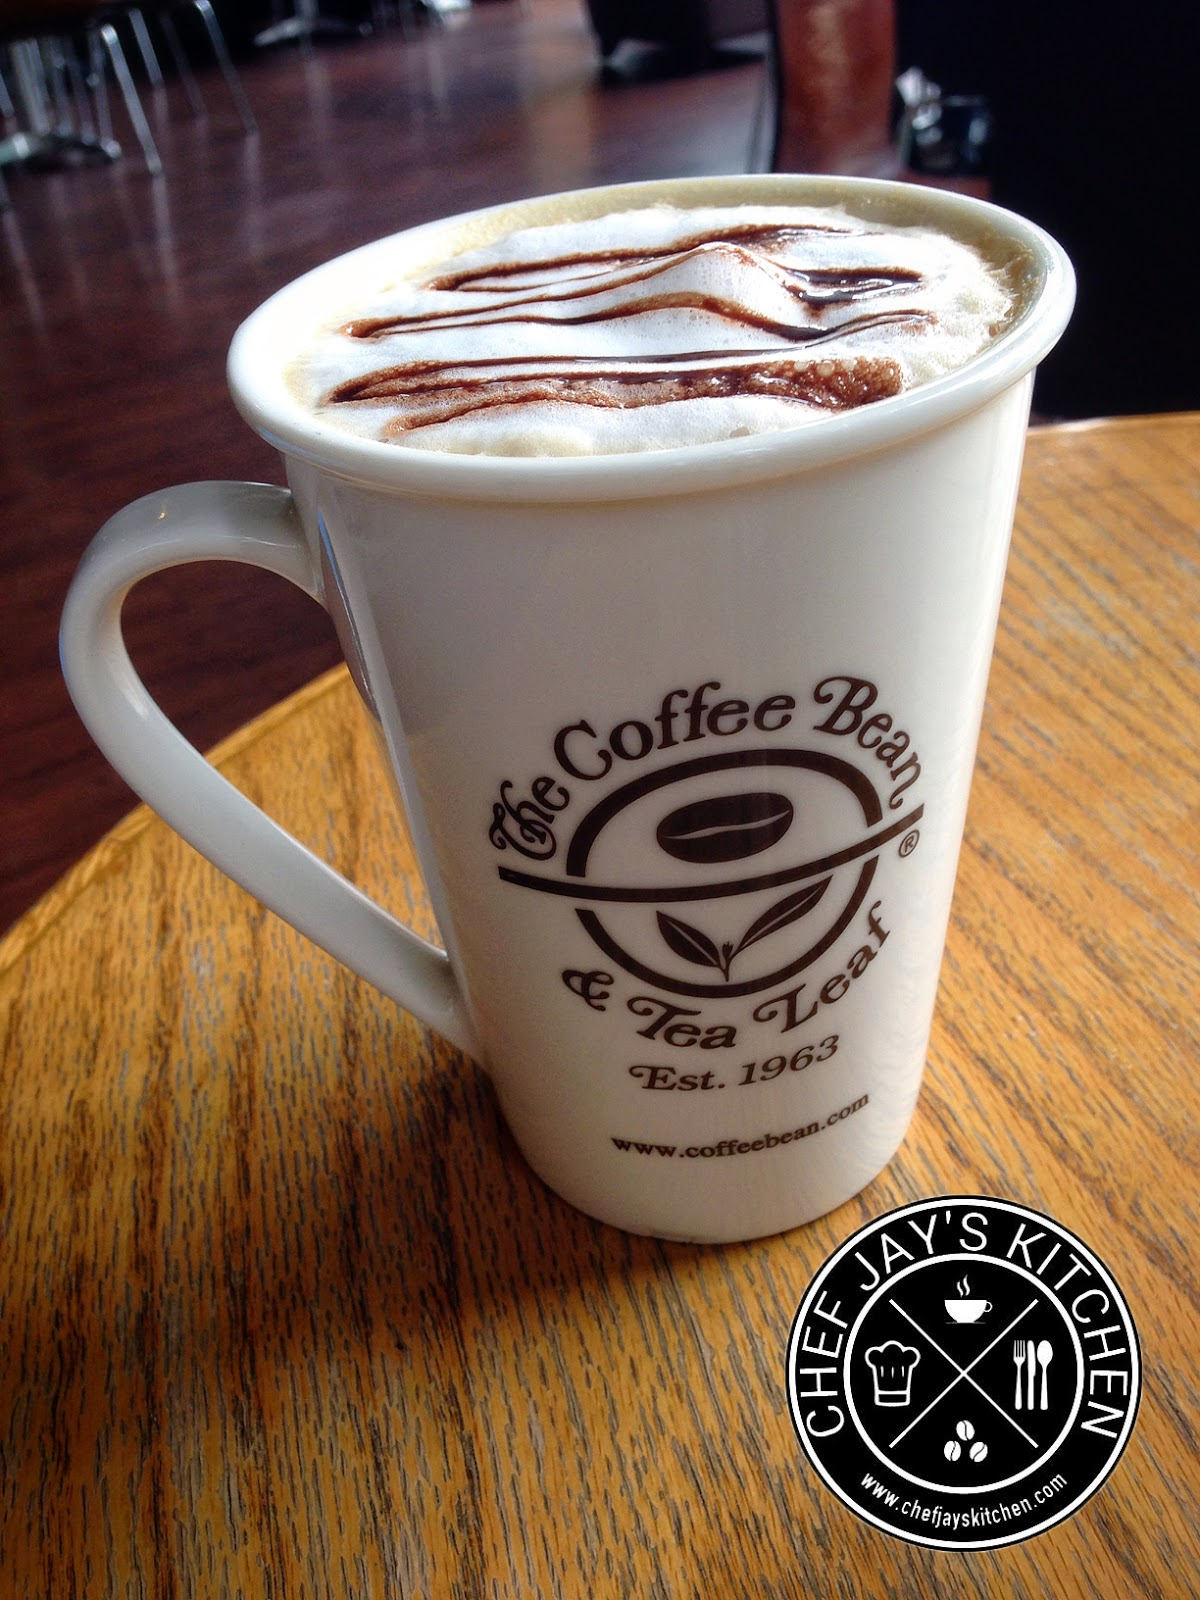 Here's a Menu Guide for Coffee Bean and Tea Leaf ...